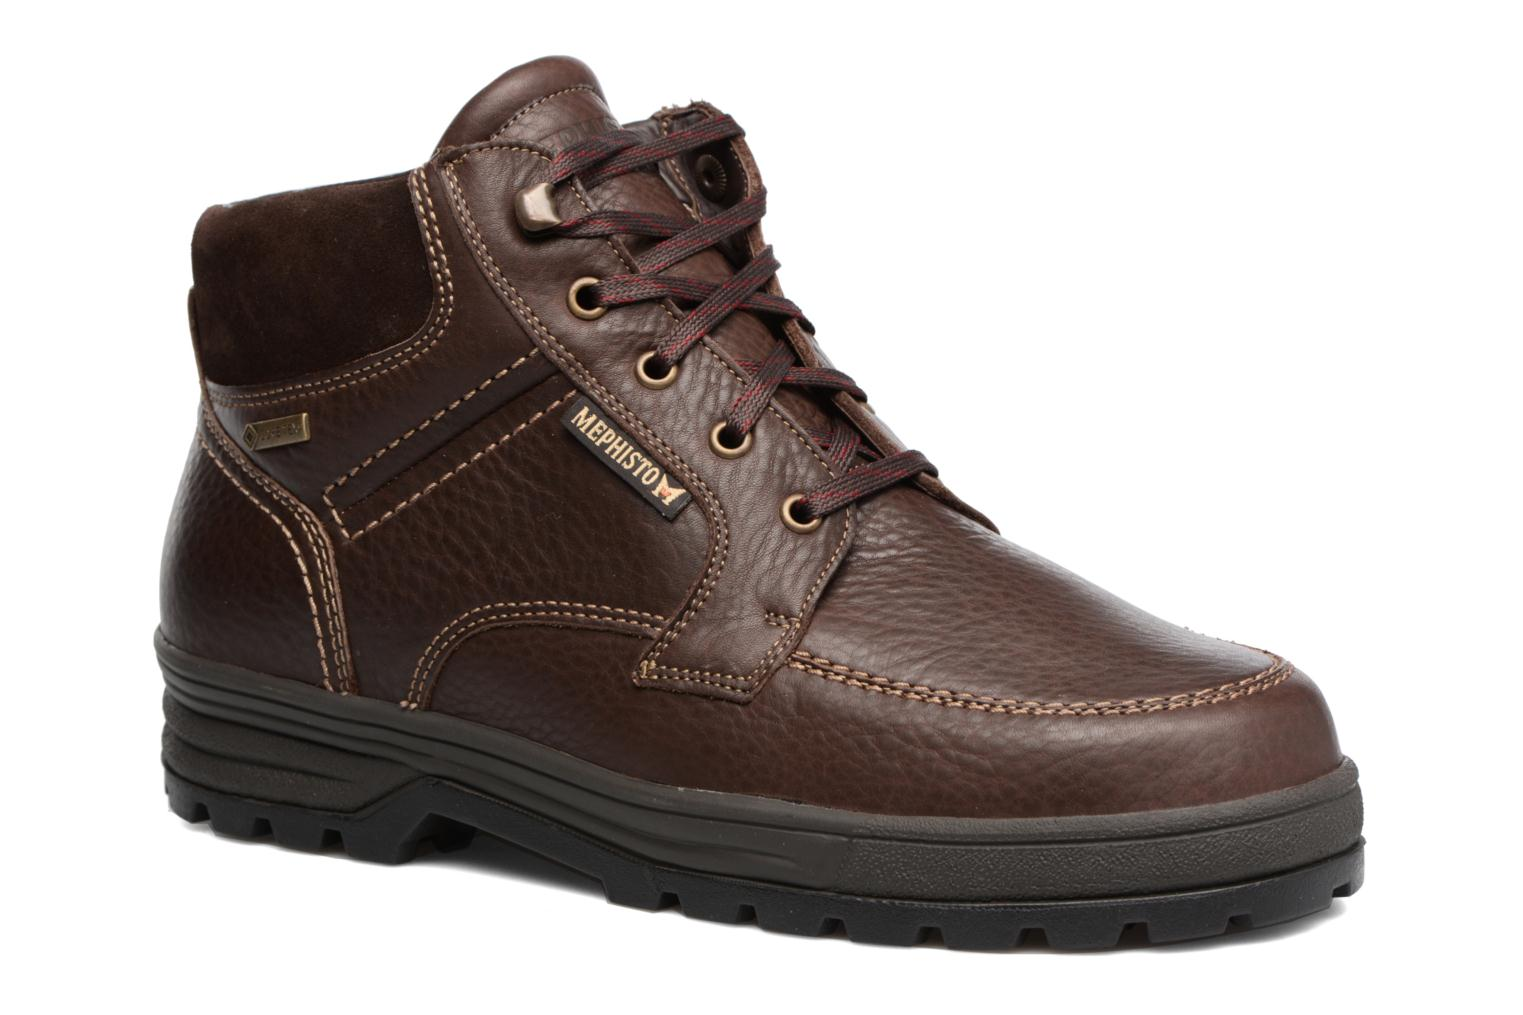 Marques Chaussure homme Mephisto homme Jim Gt Chestnut